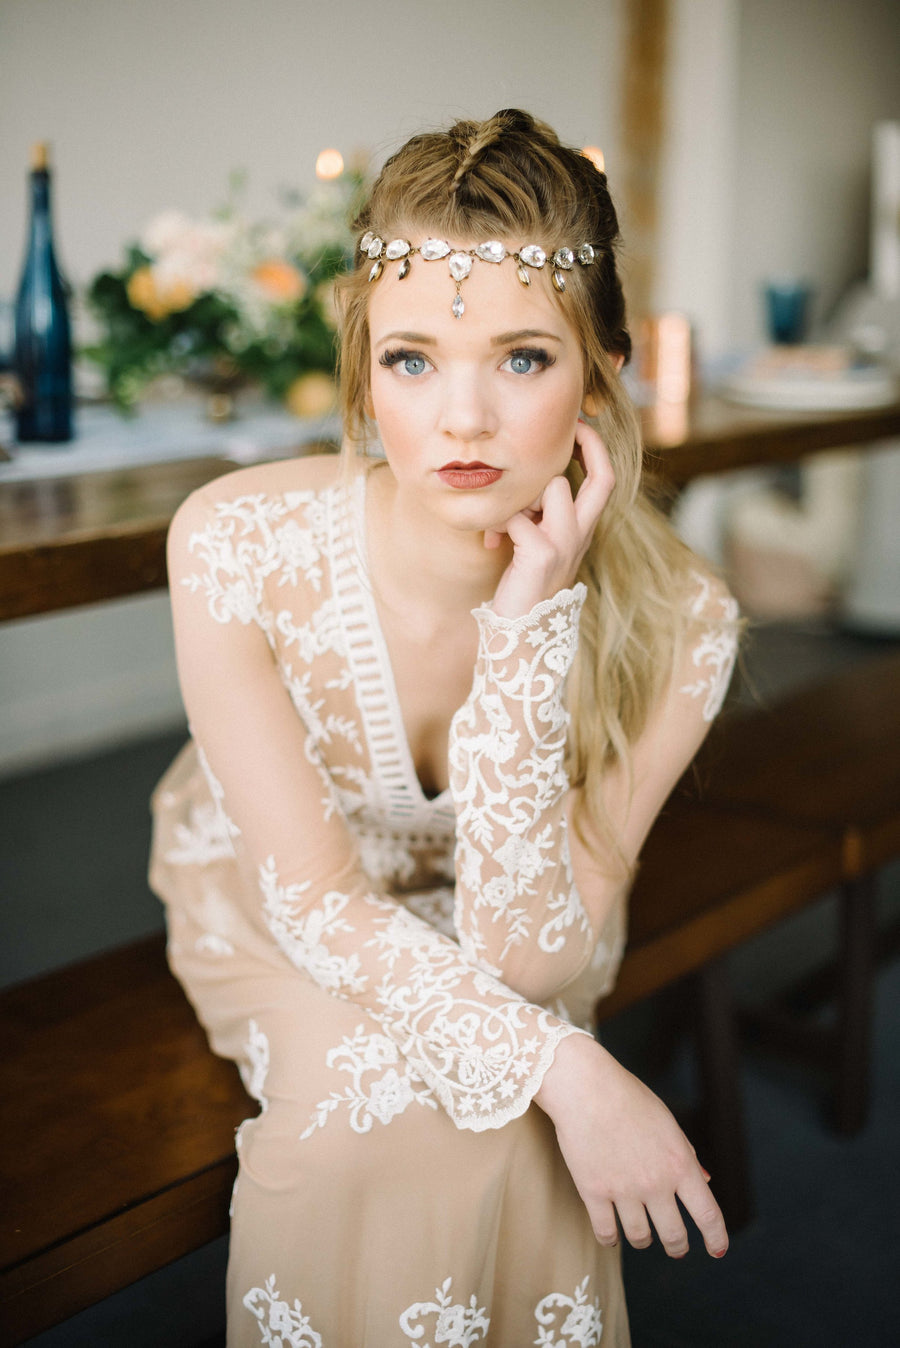 Danani | Stunning crystal dew drop forehead jewelry wedding headpiece in bronze, perfect for a glam bohemian bride | Eden Strader Photography